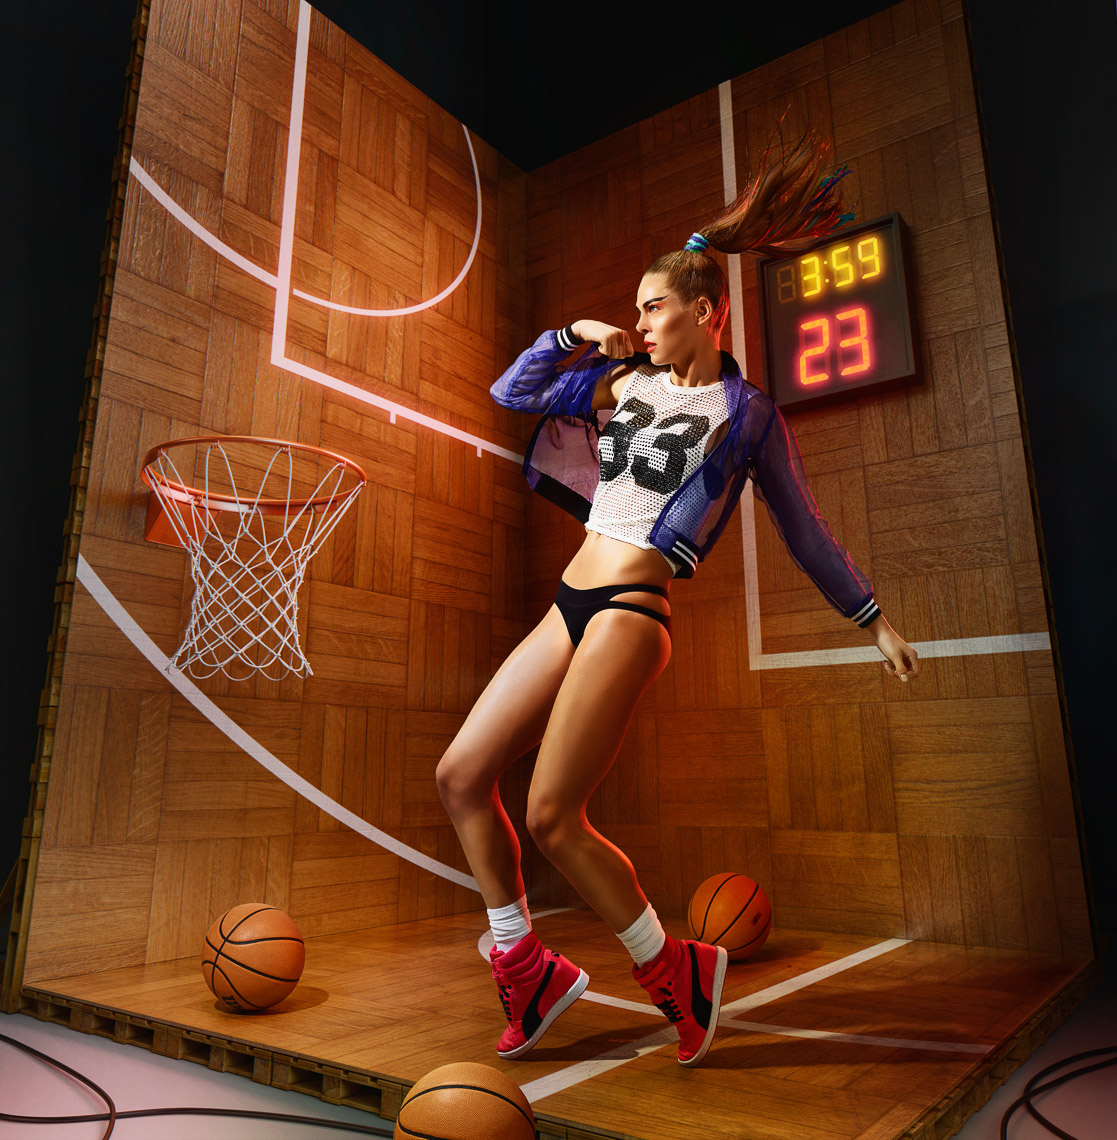 Fashion_BBALL_v9cL_fix